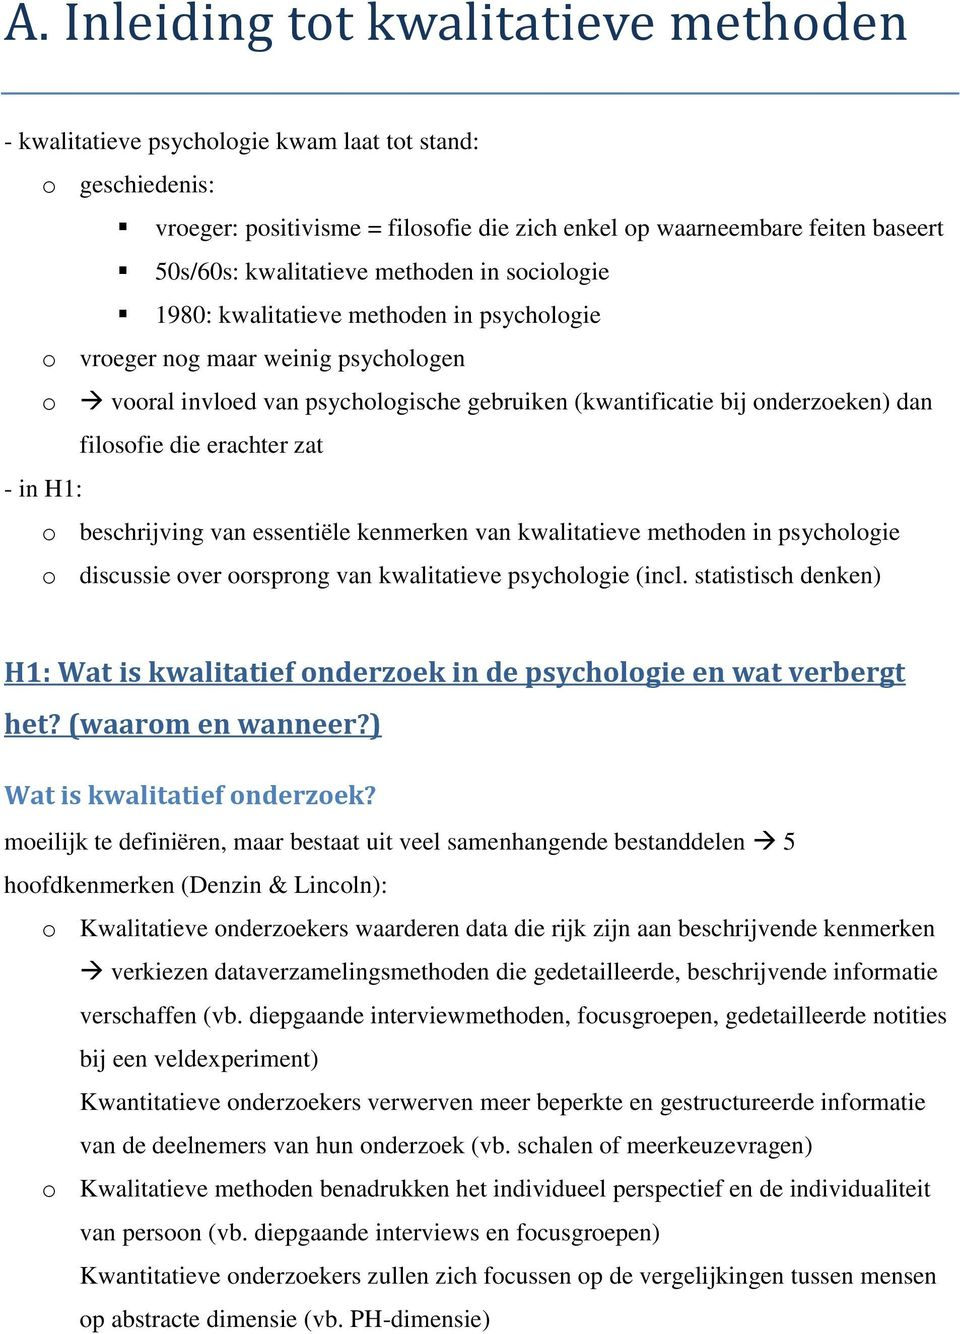 filosofie die erachter zat - in H1: o beschrijving van essentiële kenmerken van kwalitatieve methoden in psychologie o discussie over oorsprong van kwalitatieve psychologie (incl.